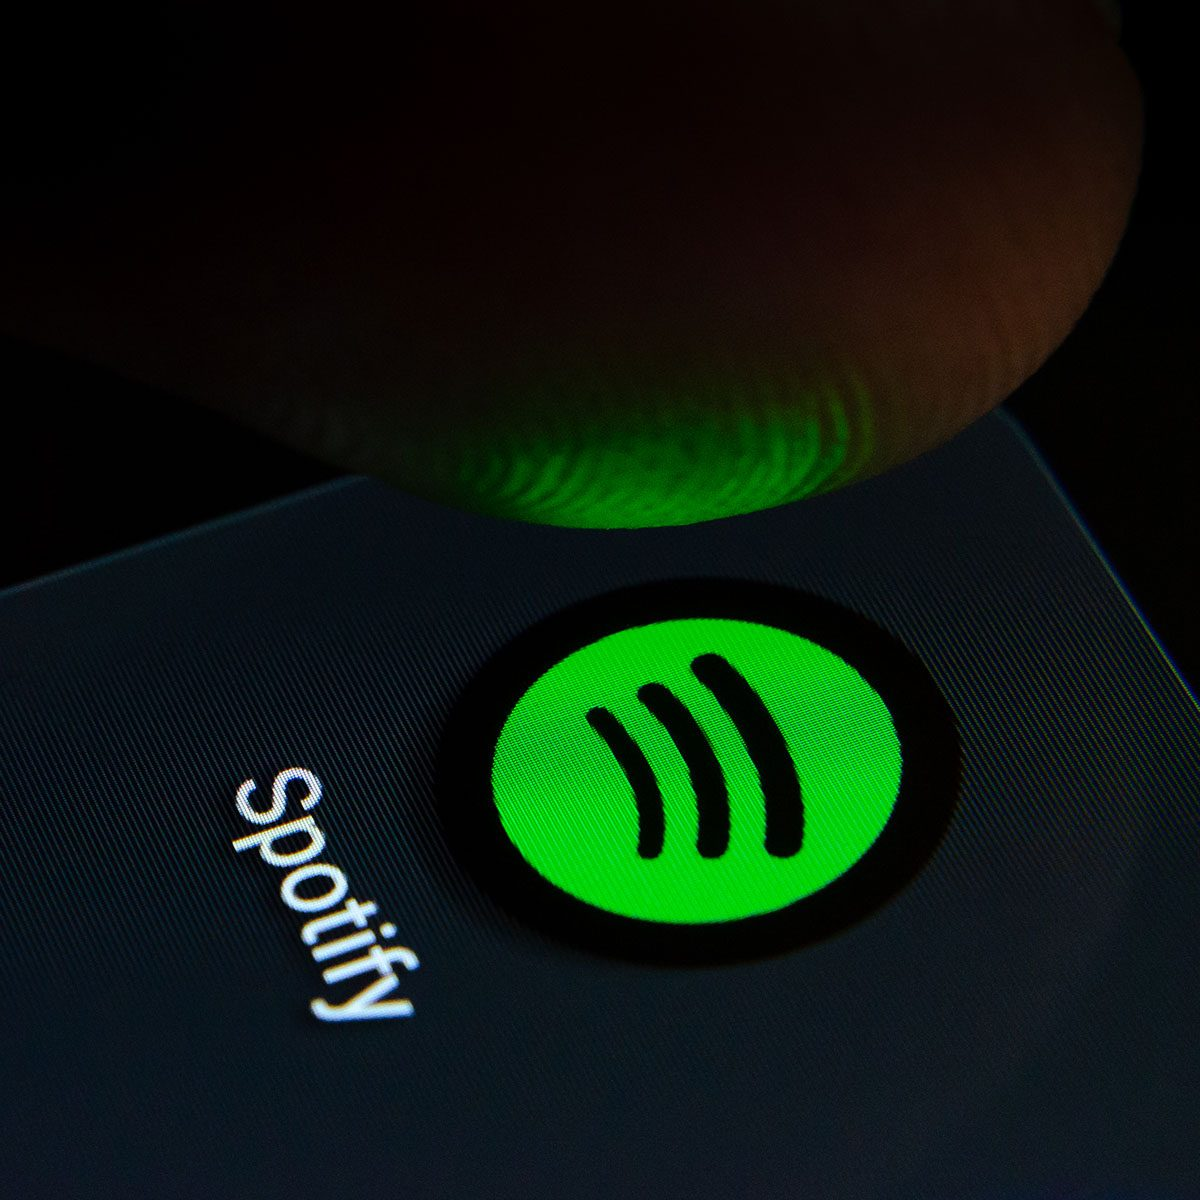 Stone, Staffordshire / United Kingdom - July 28 2019: Spotify app icon on the smartphone screen with visible pixels and the finger about to launch it. Extreme close up photo.; Shutterstock ID 1463748425; Job (TFH, TOH, RD, BNB, CWM, CM): tfh